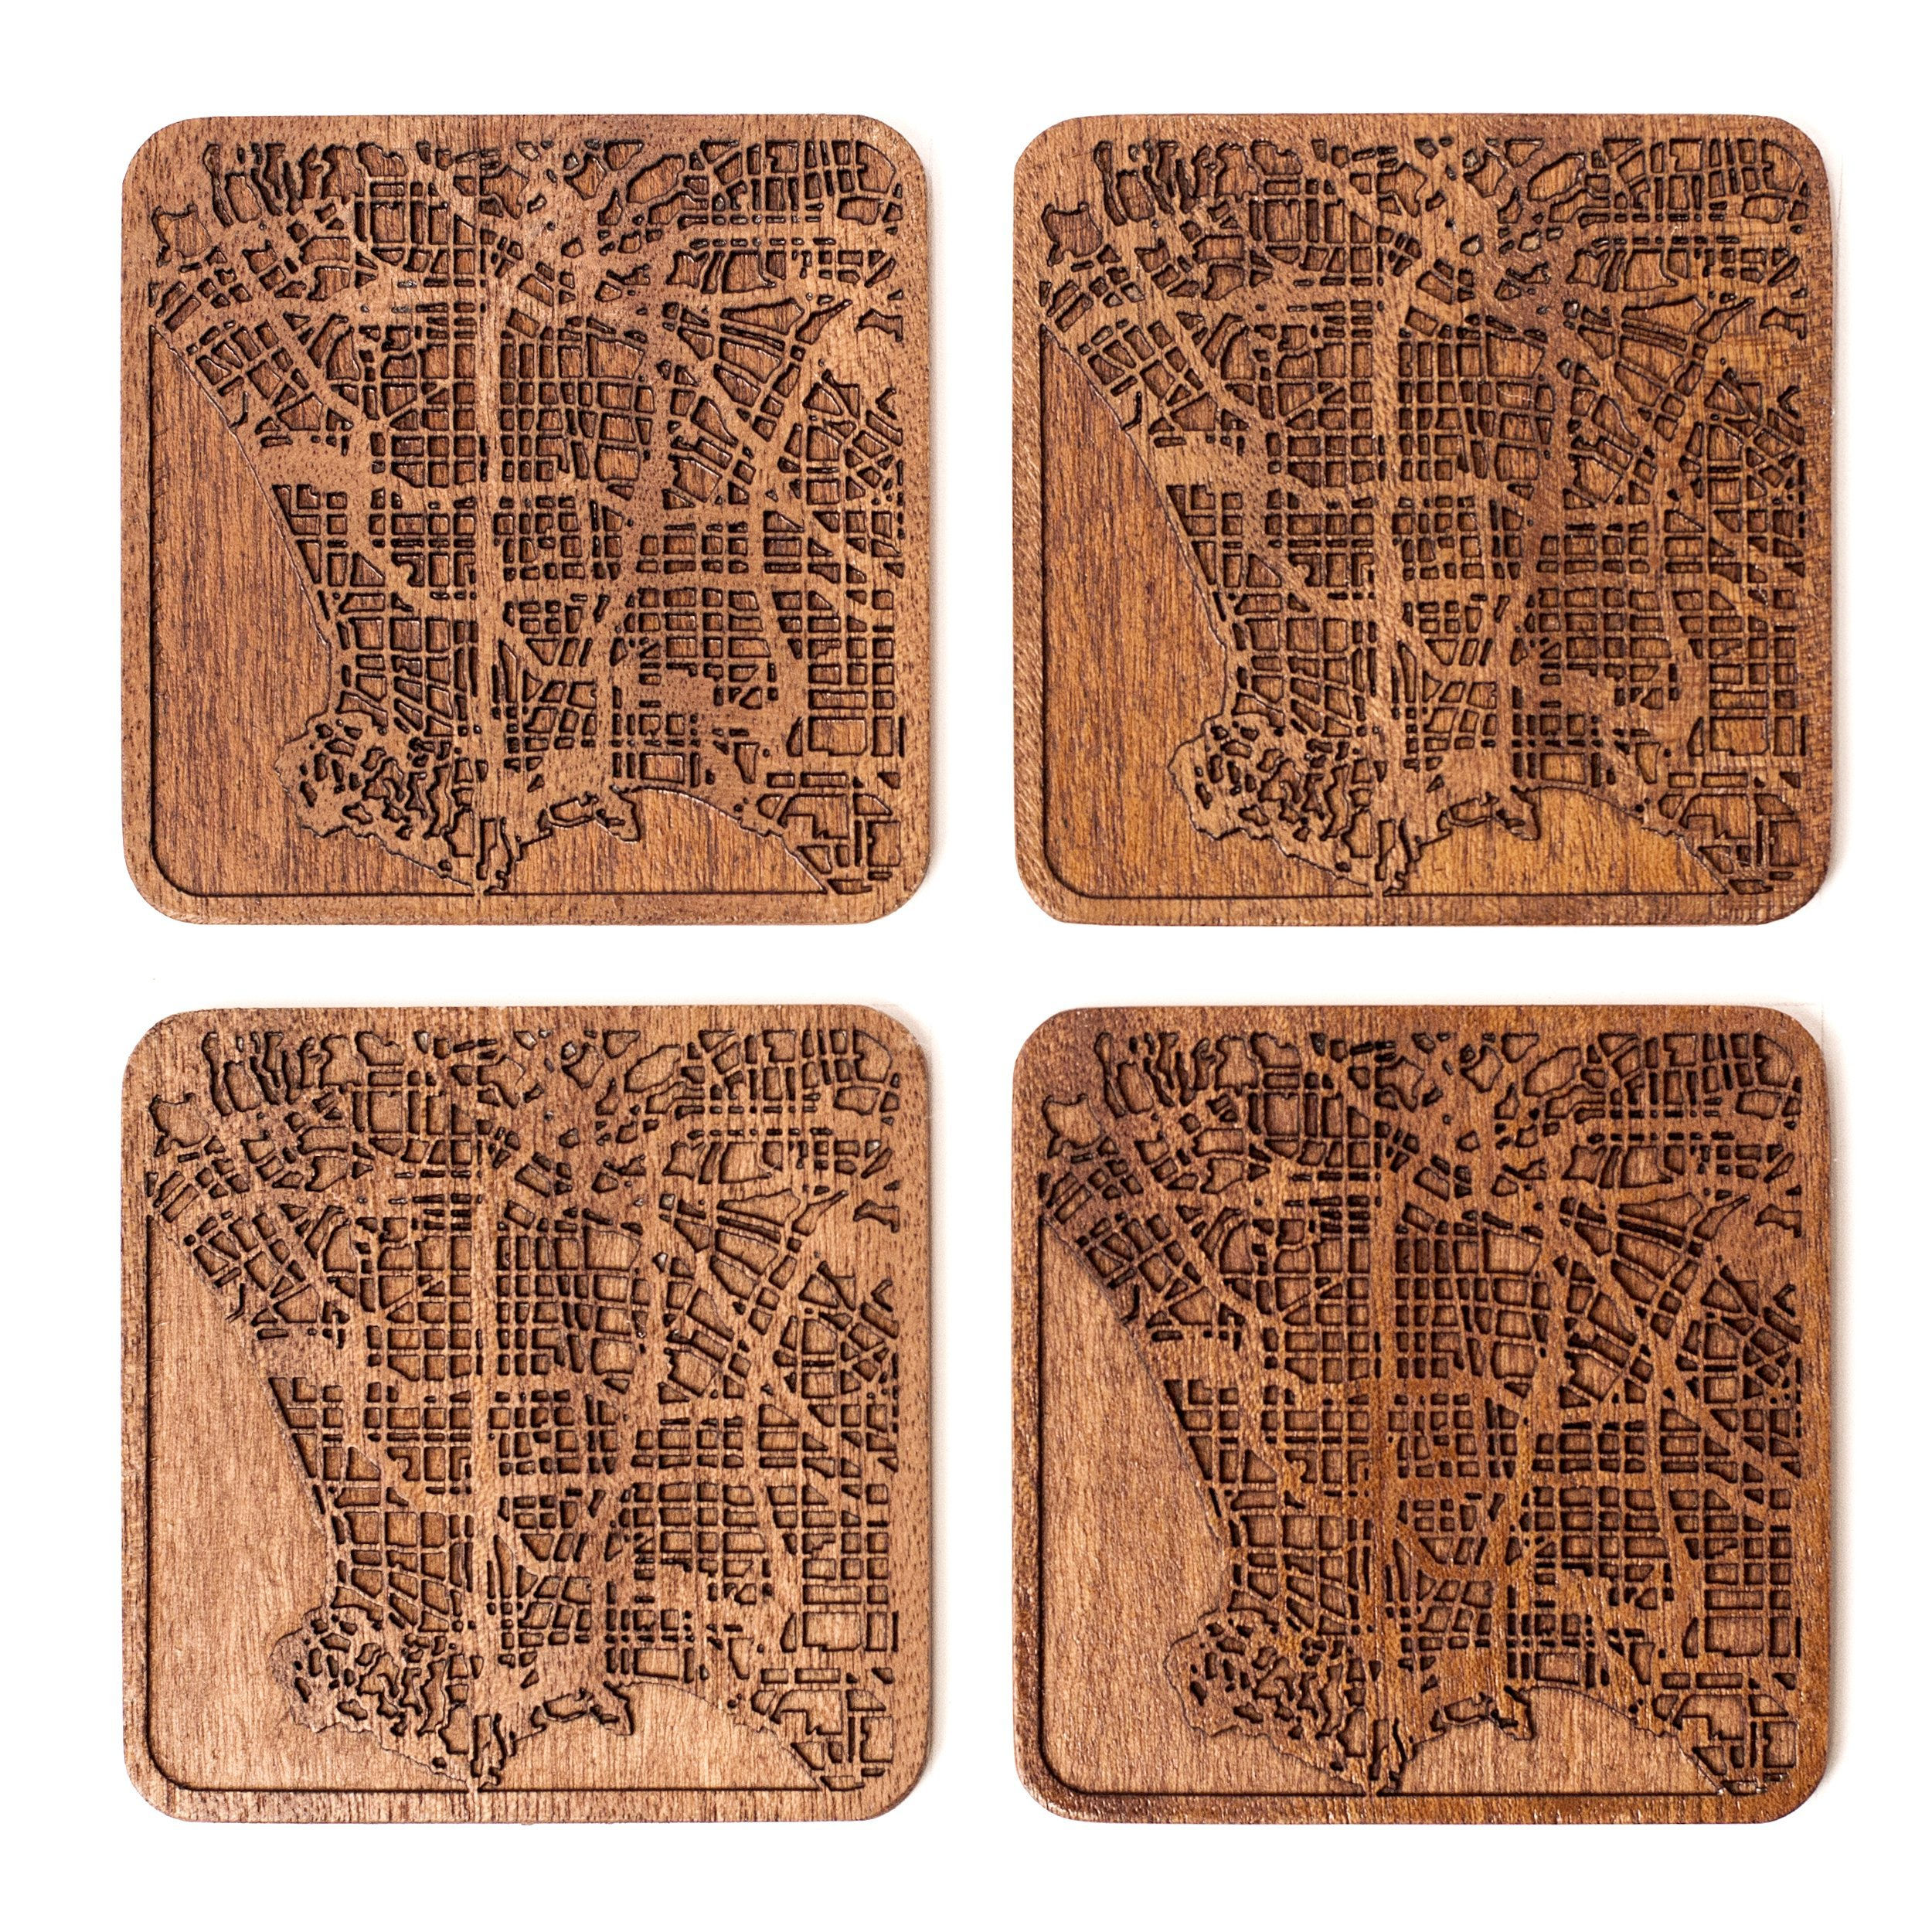 Los Angeles Map Coaster by O3 Design Studio, Set Of 4, Sapele Wooden Coaster With City Map, Handmade